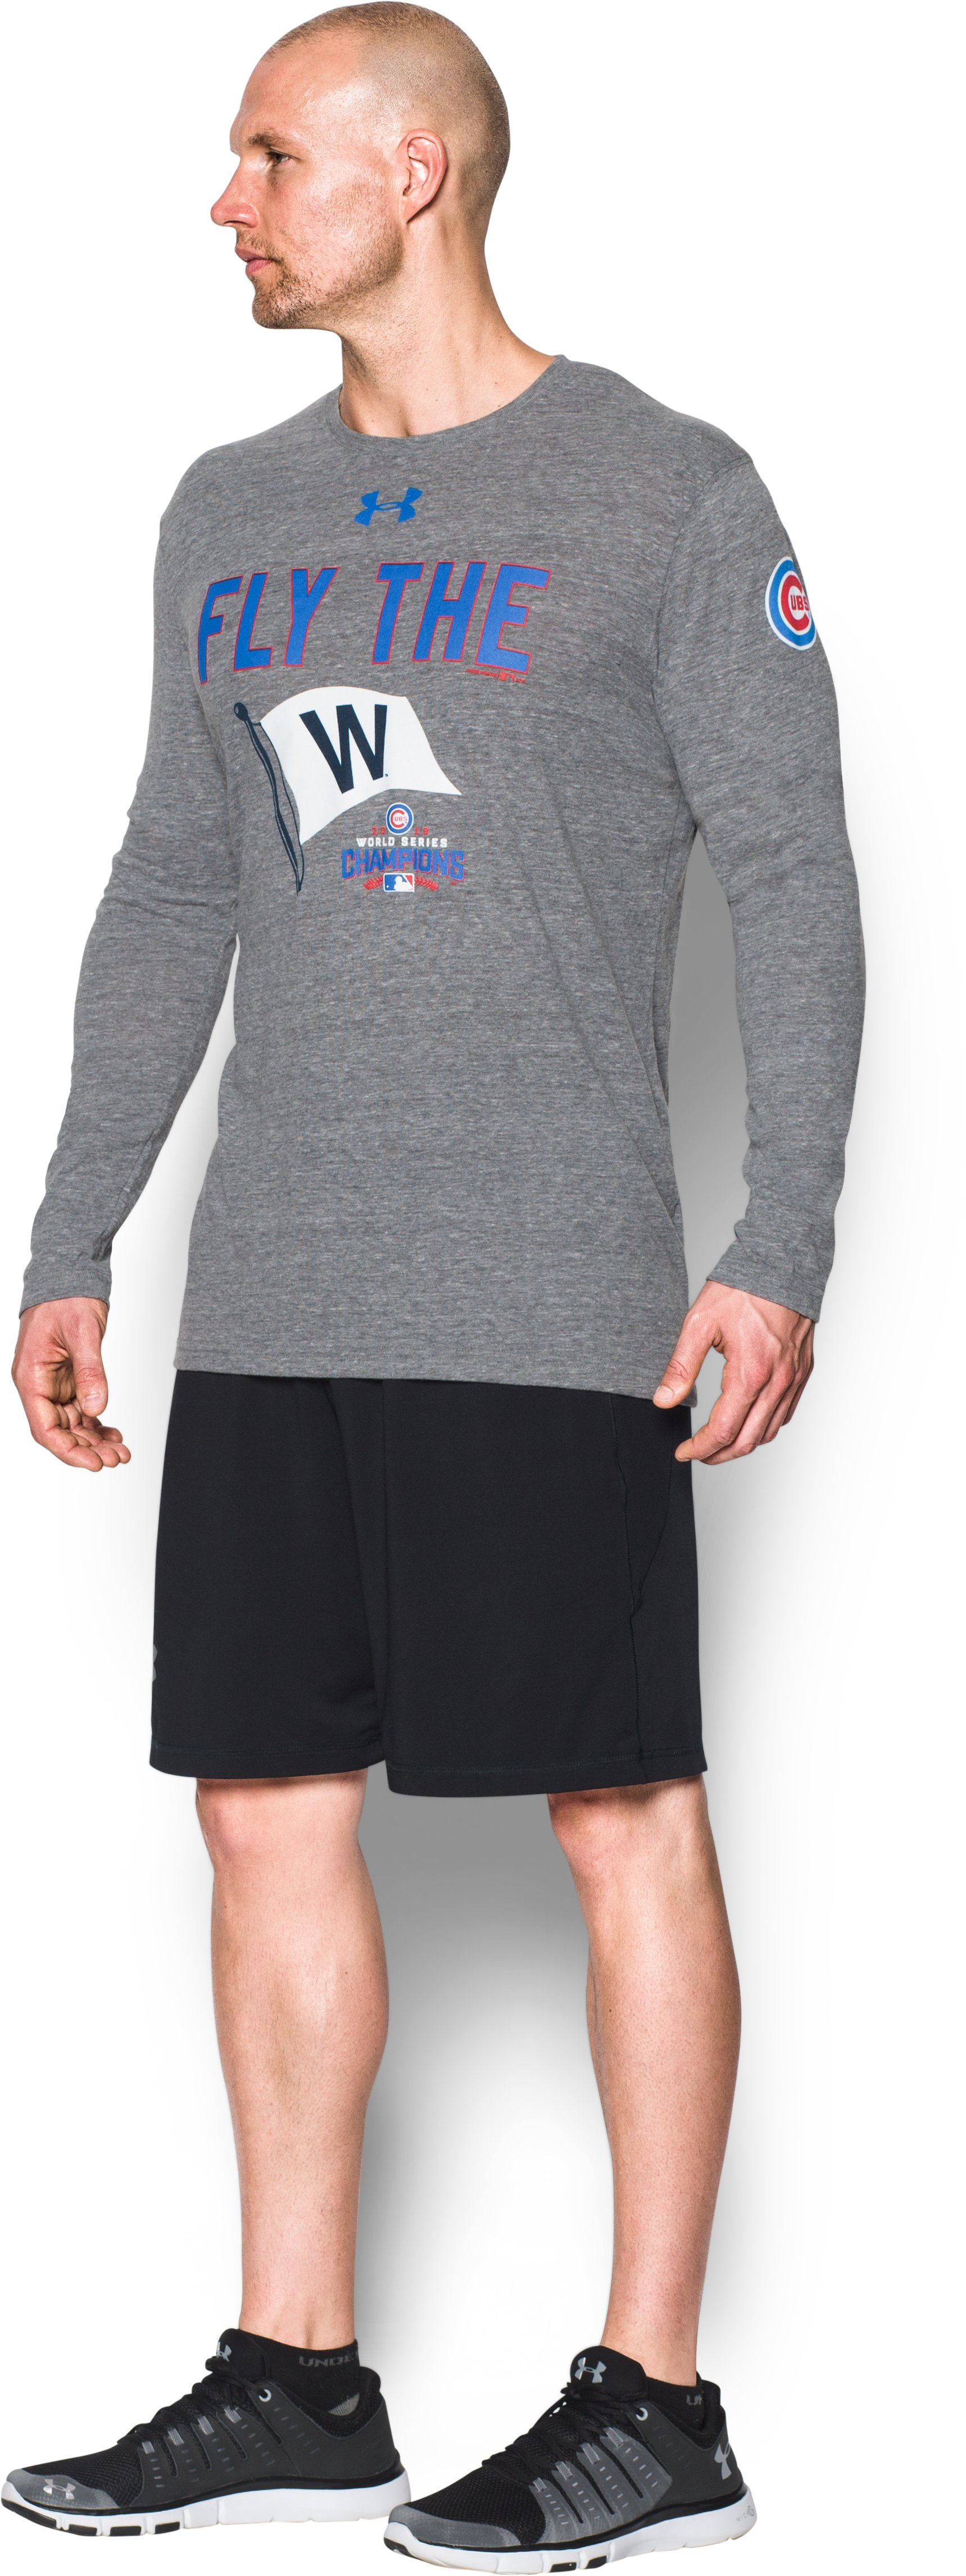 Men's Chicago Cubs Fly the W Tri-blend Long Sleeve T-Shirt, True Gray Heather, undefined